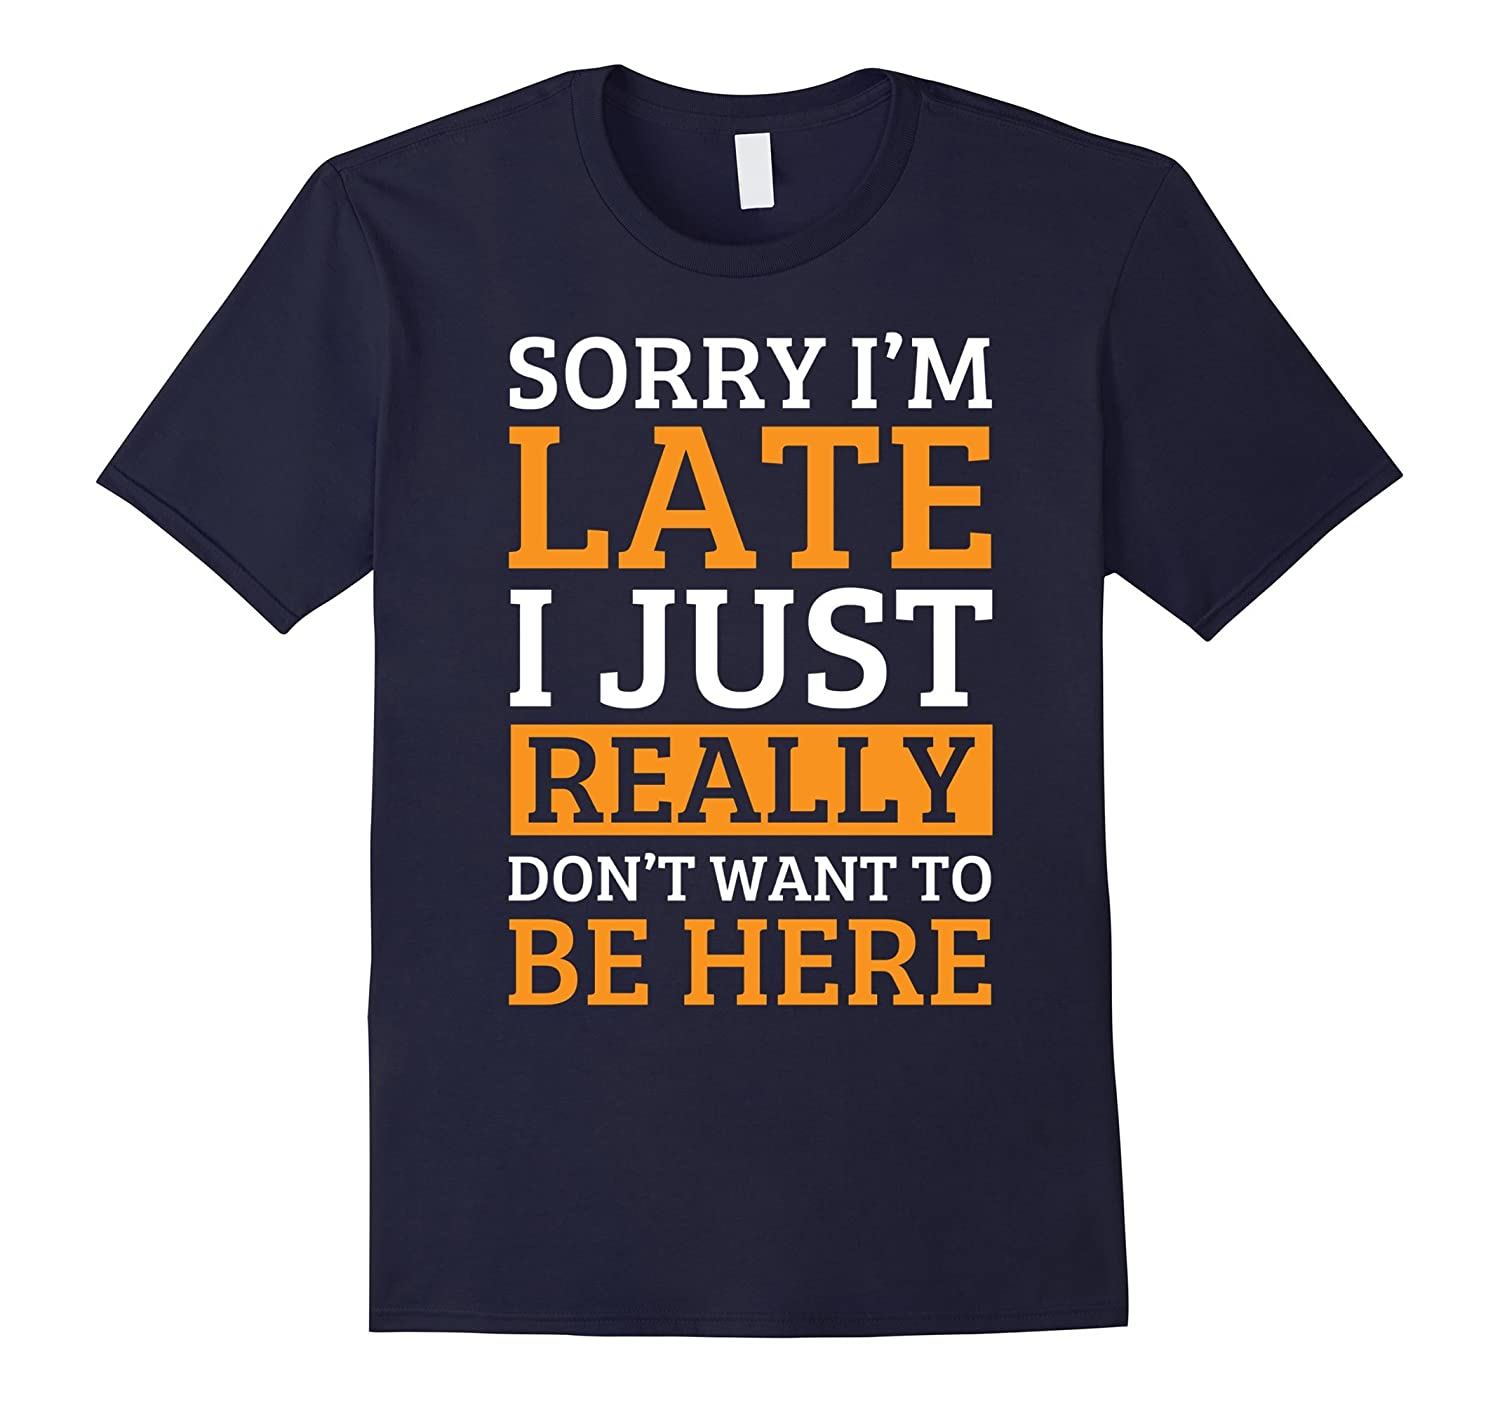 Sorry I'm late I just really don't want to be here T shirt-FL